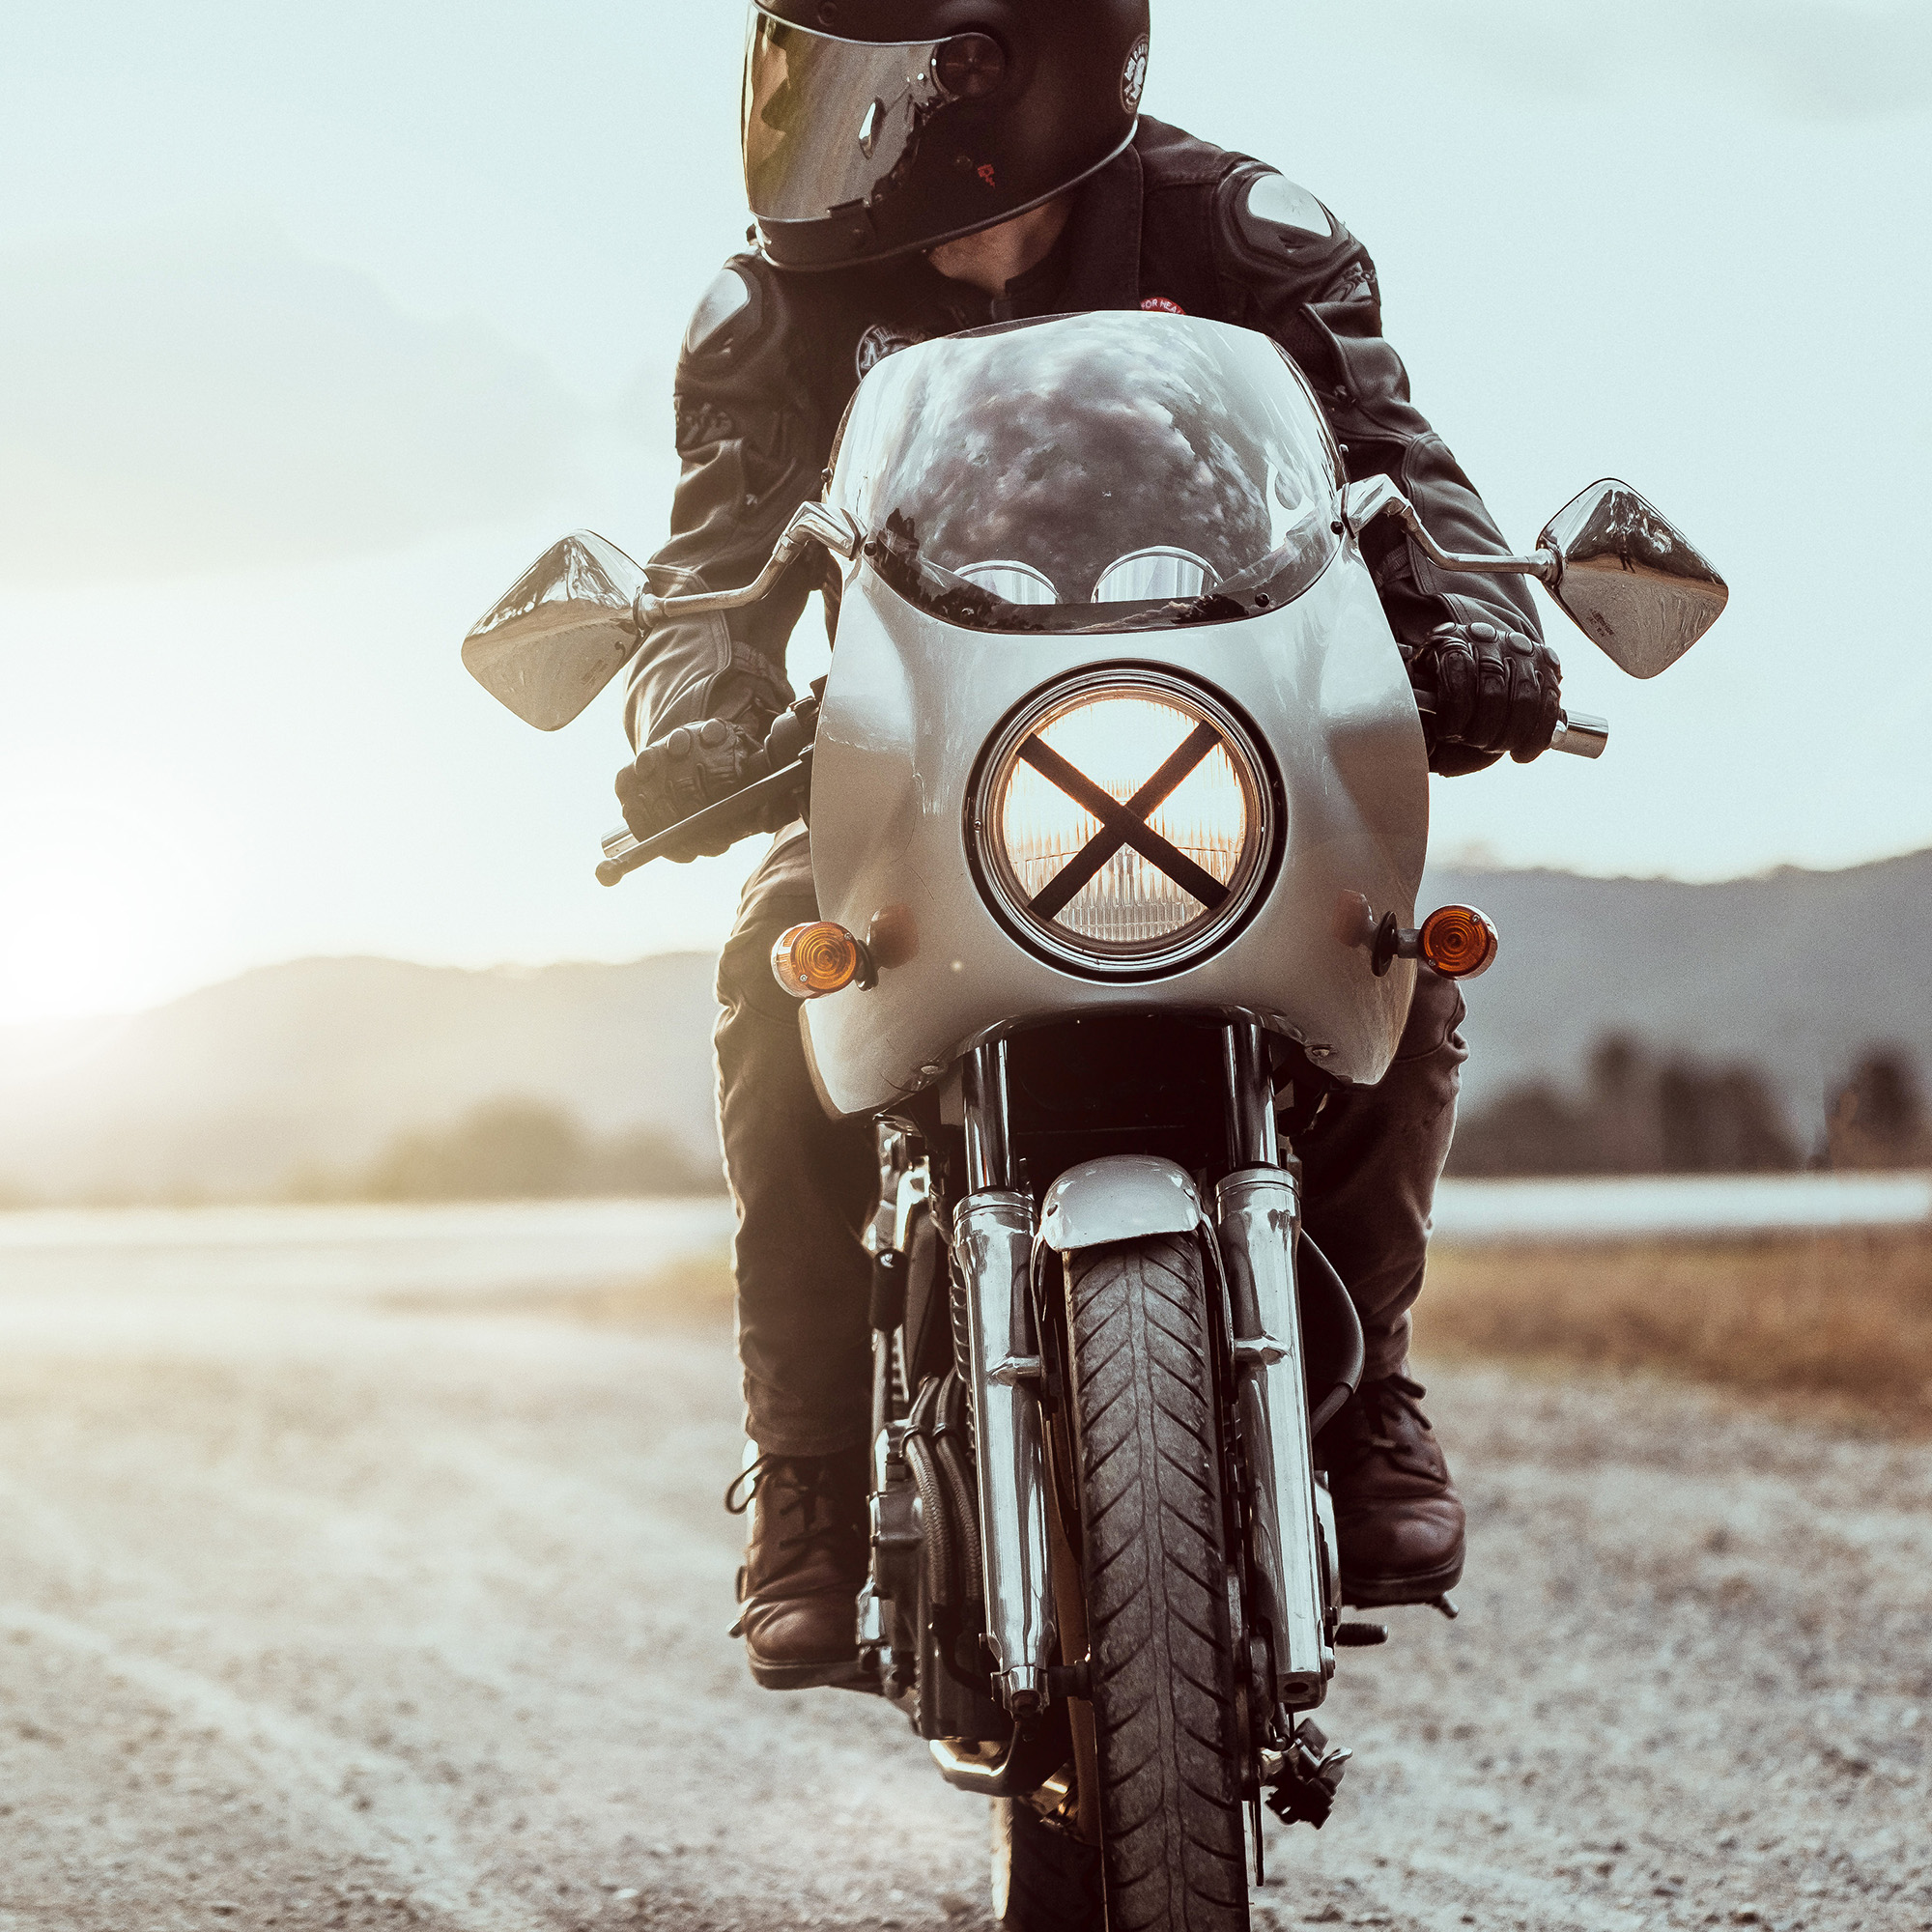 A cafe racer motorcycle and rider tackles a dirt road in Australia